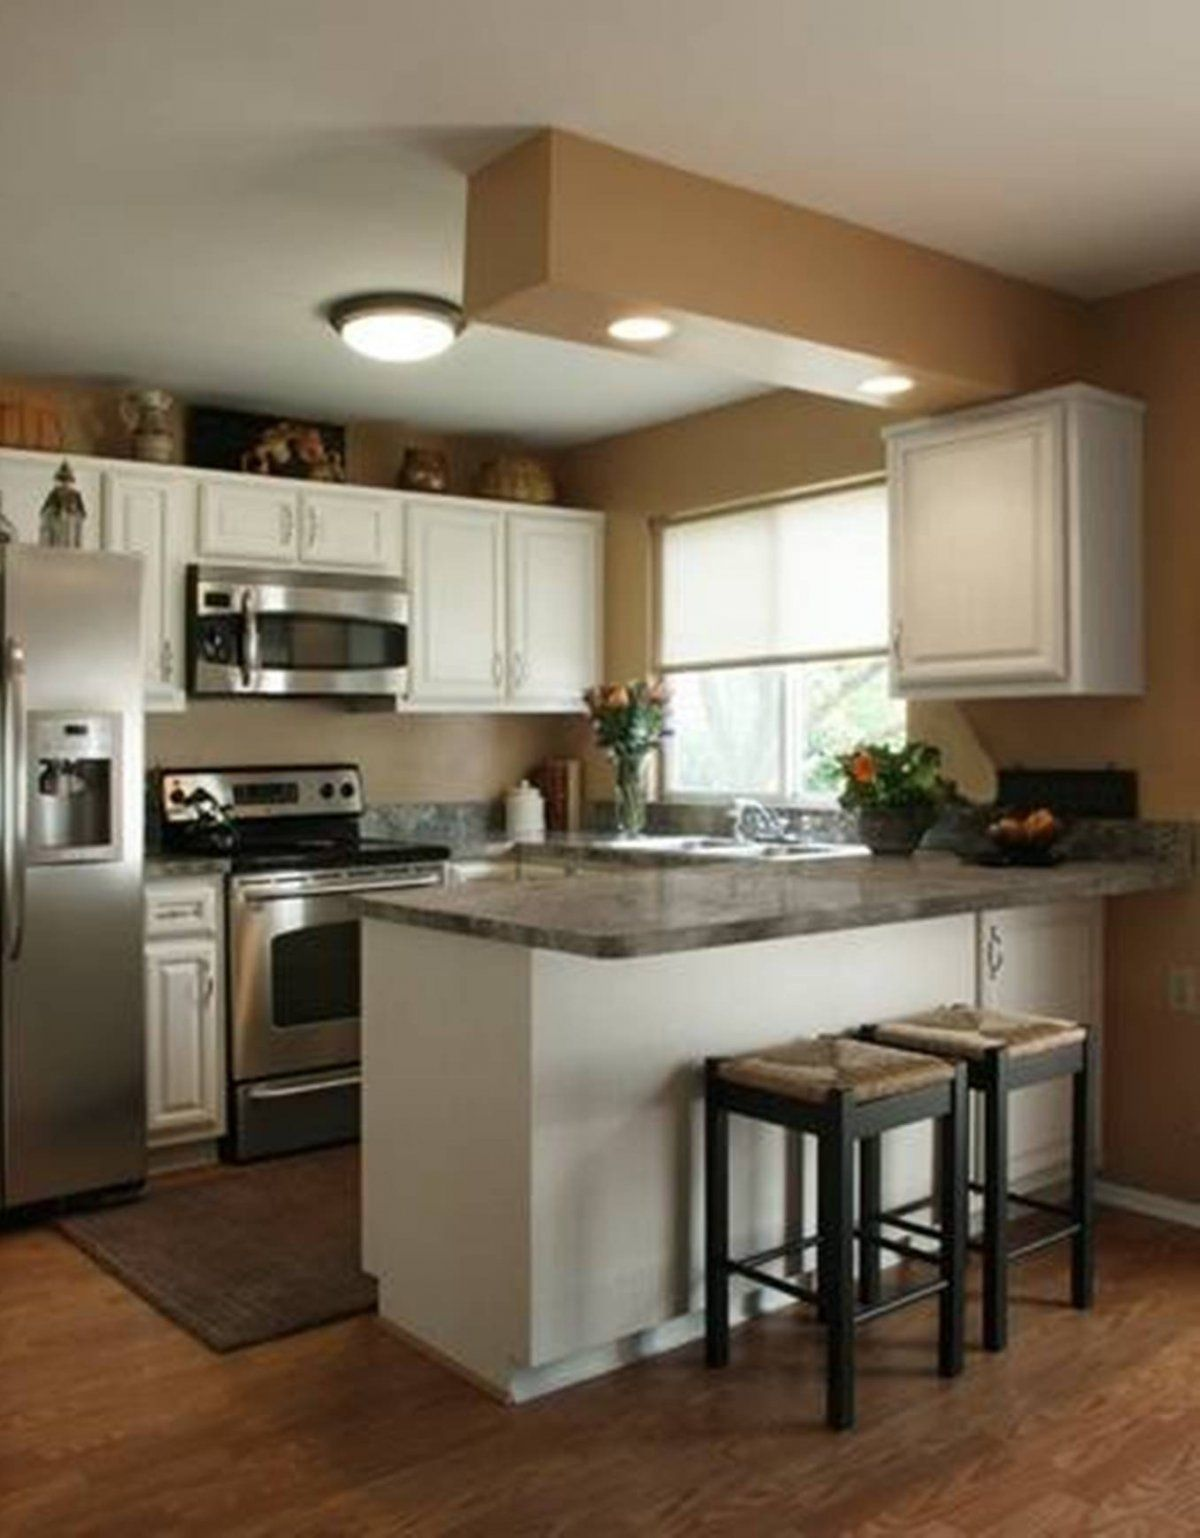 Very small kitchenette designs for home